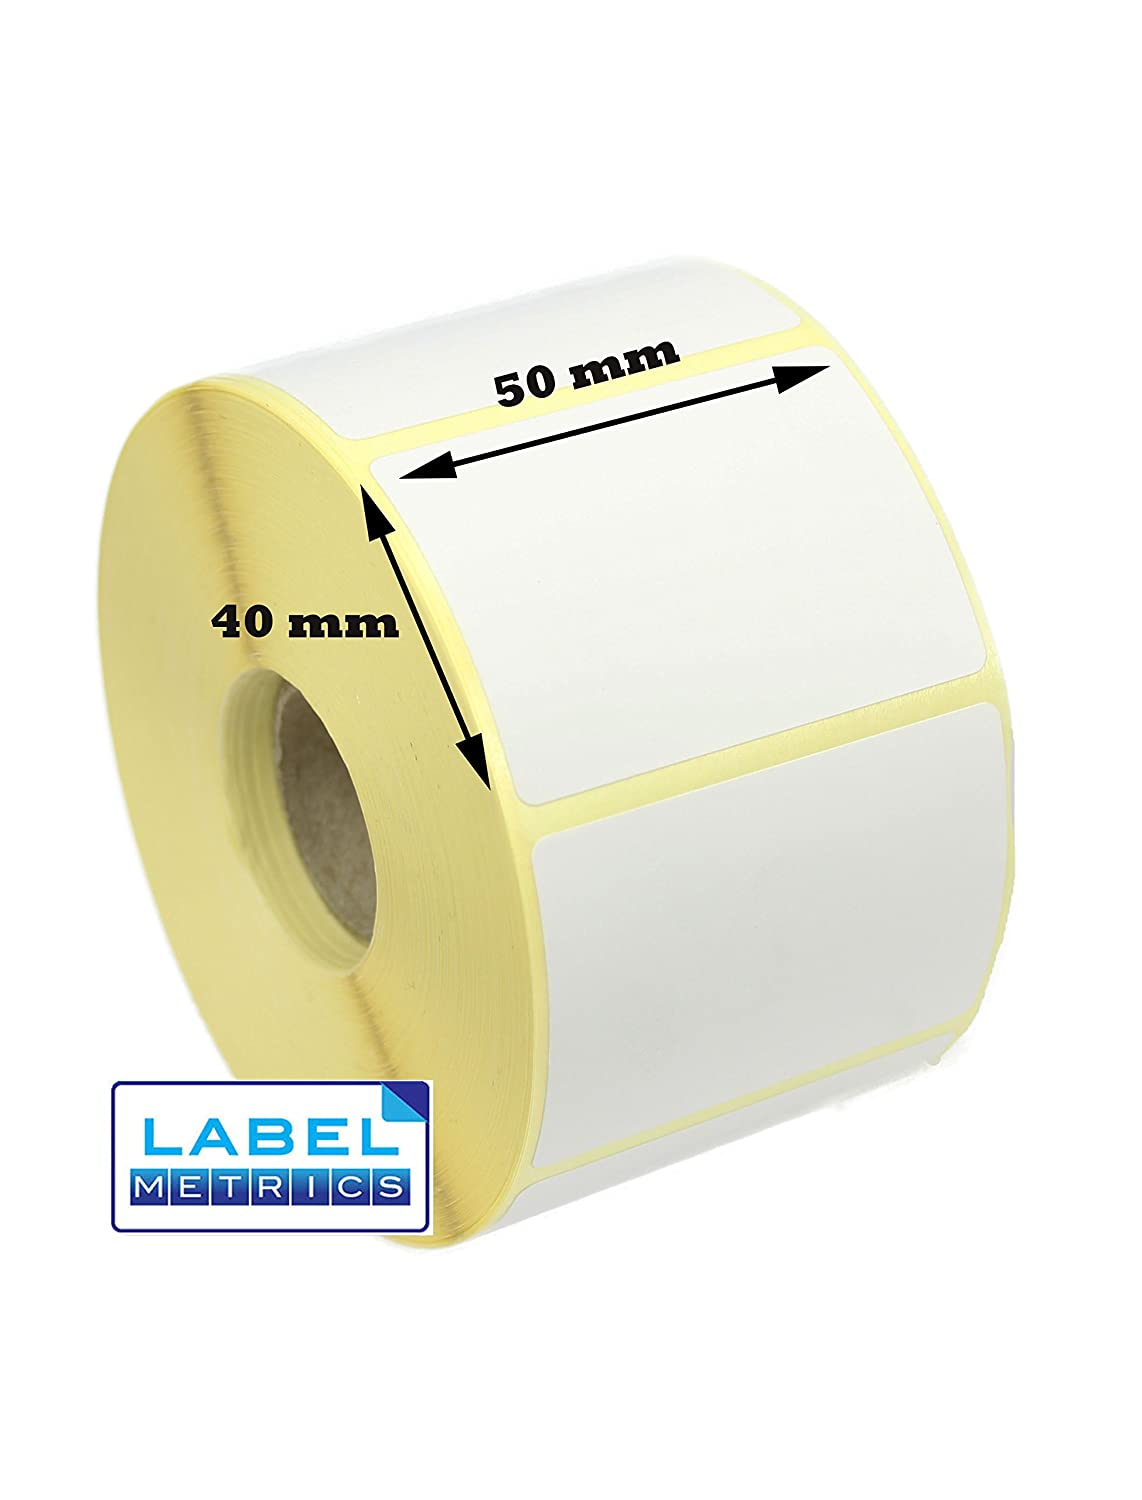 Business & Industrie Transport & Logistik 50mm x 25mm WHITE Direct Thermal Labels 2,000 per roll for Zebra type printer